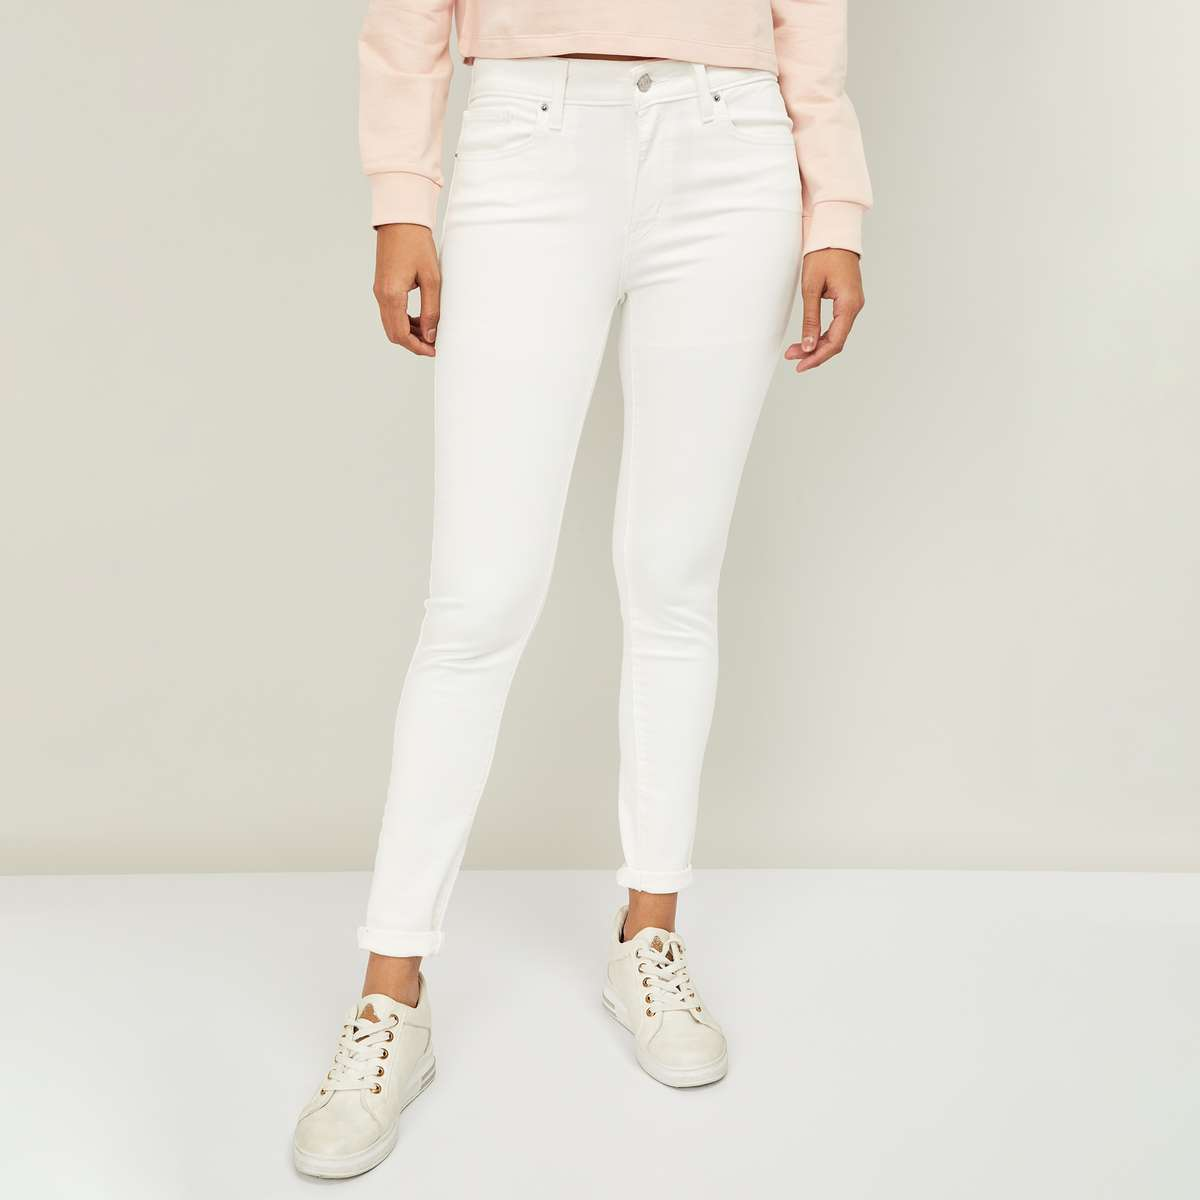 5.LEVI'S Women Solid Skinny Fit Jeans